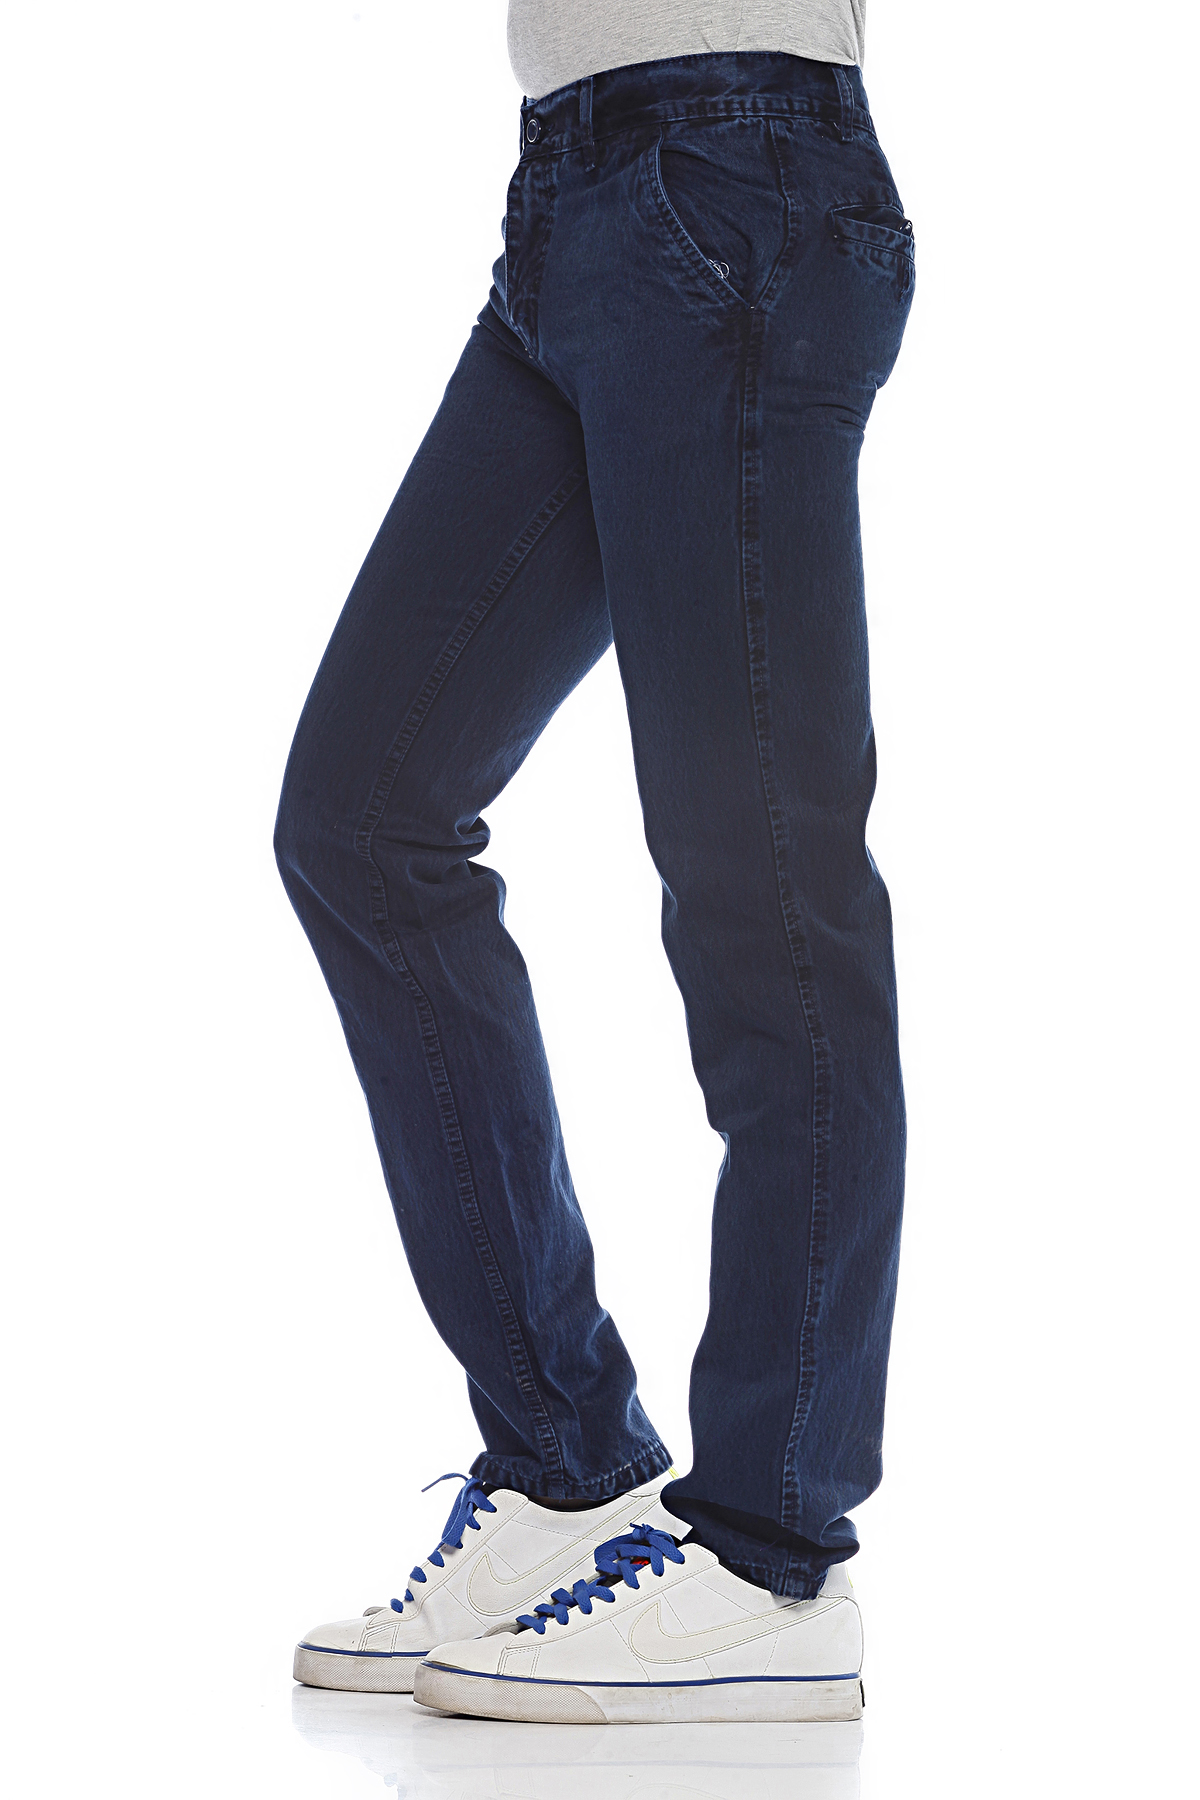 DS Blue Fashionable Straight Casual Faded Jeans